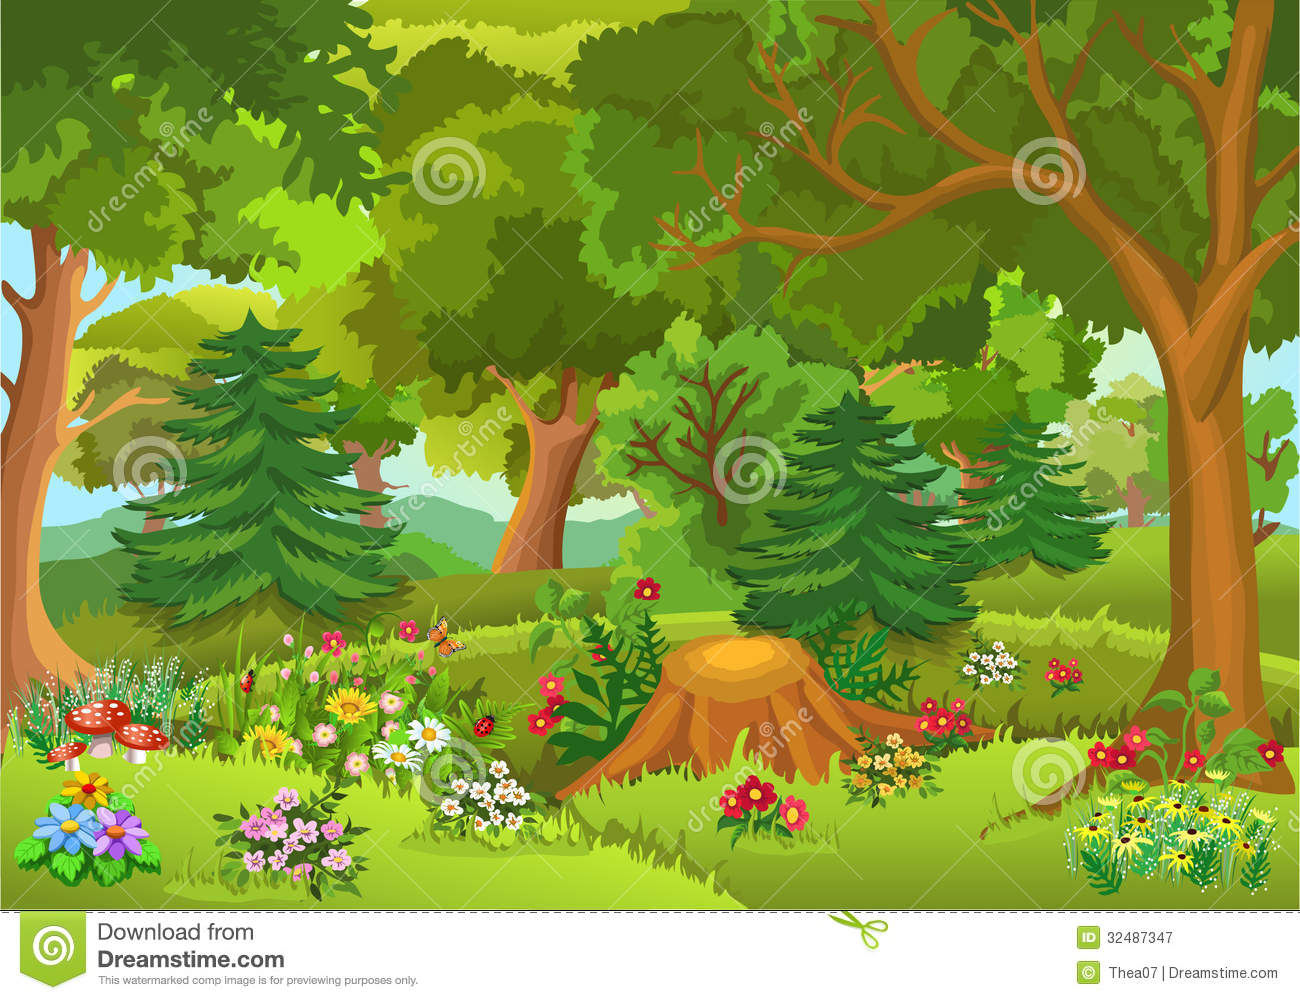 fairy tale forest clipart clipart panda free clipart images rh clipartpanda com Forest Service Logo Clip Art forest animal clipart free